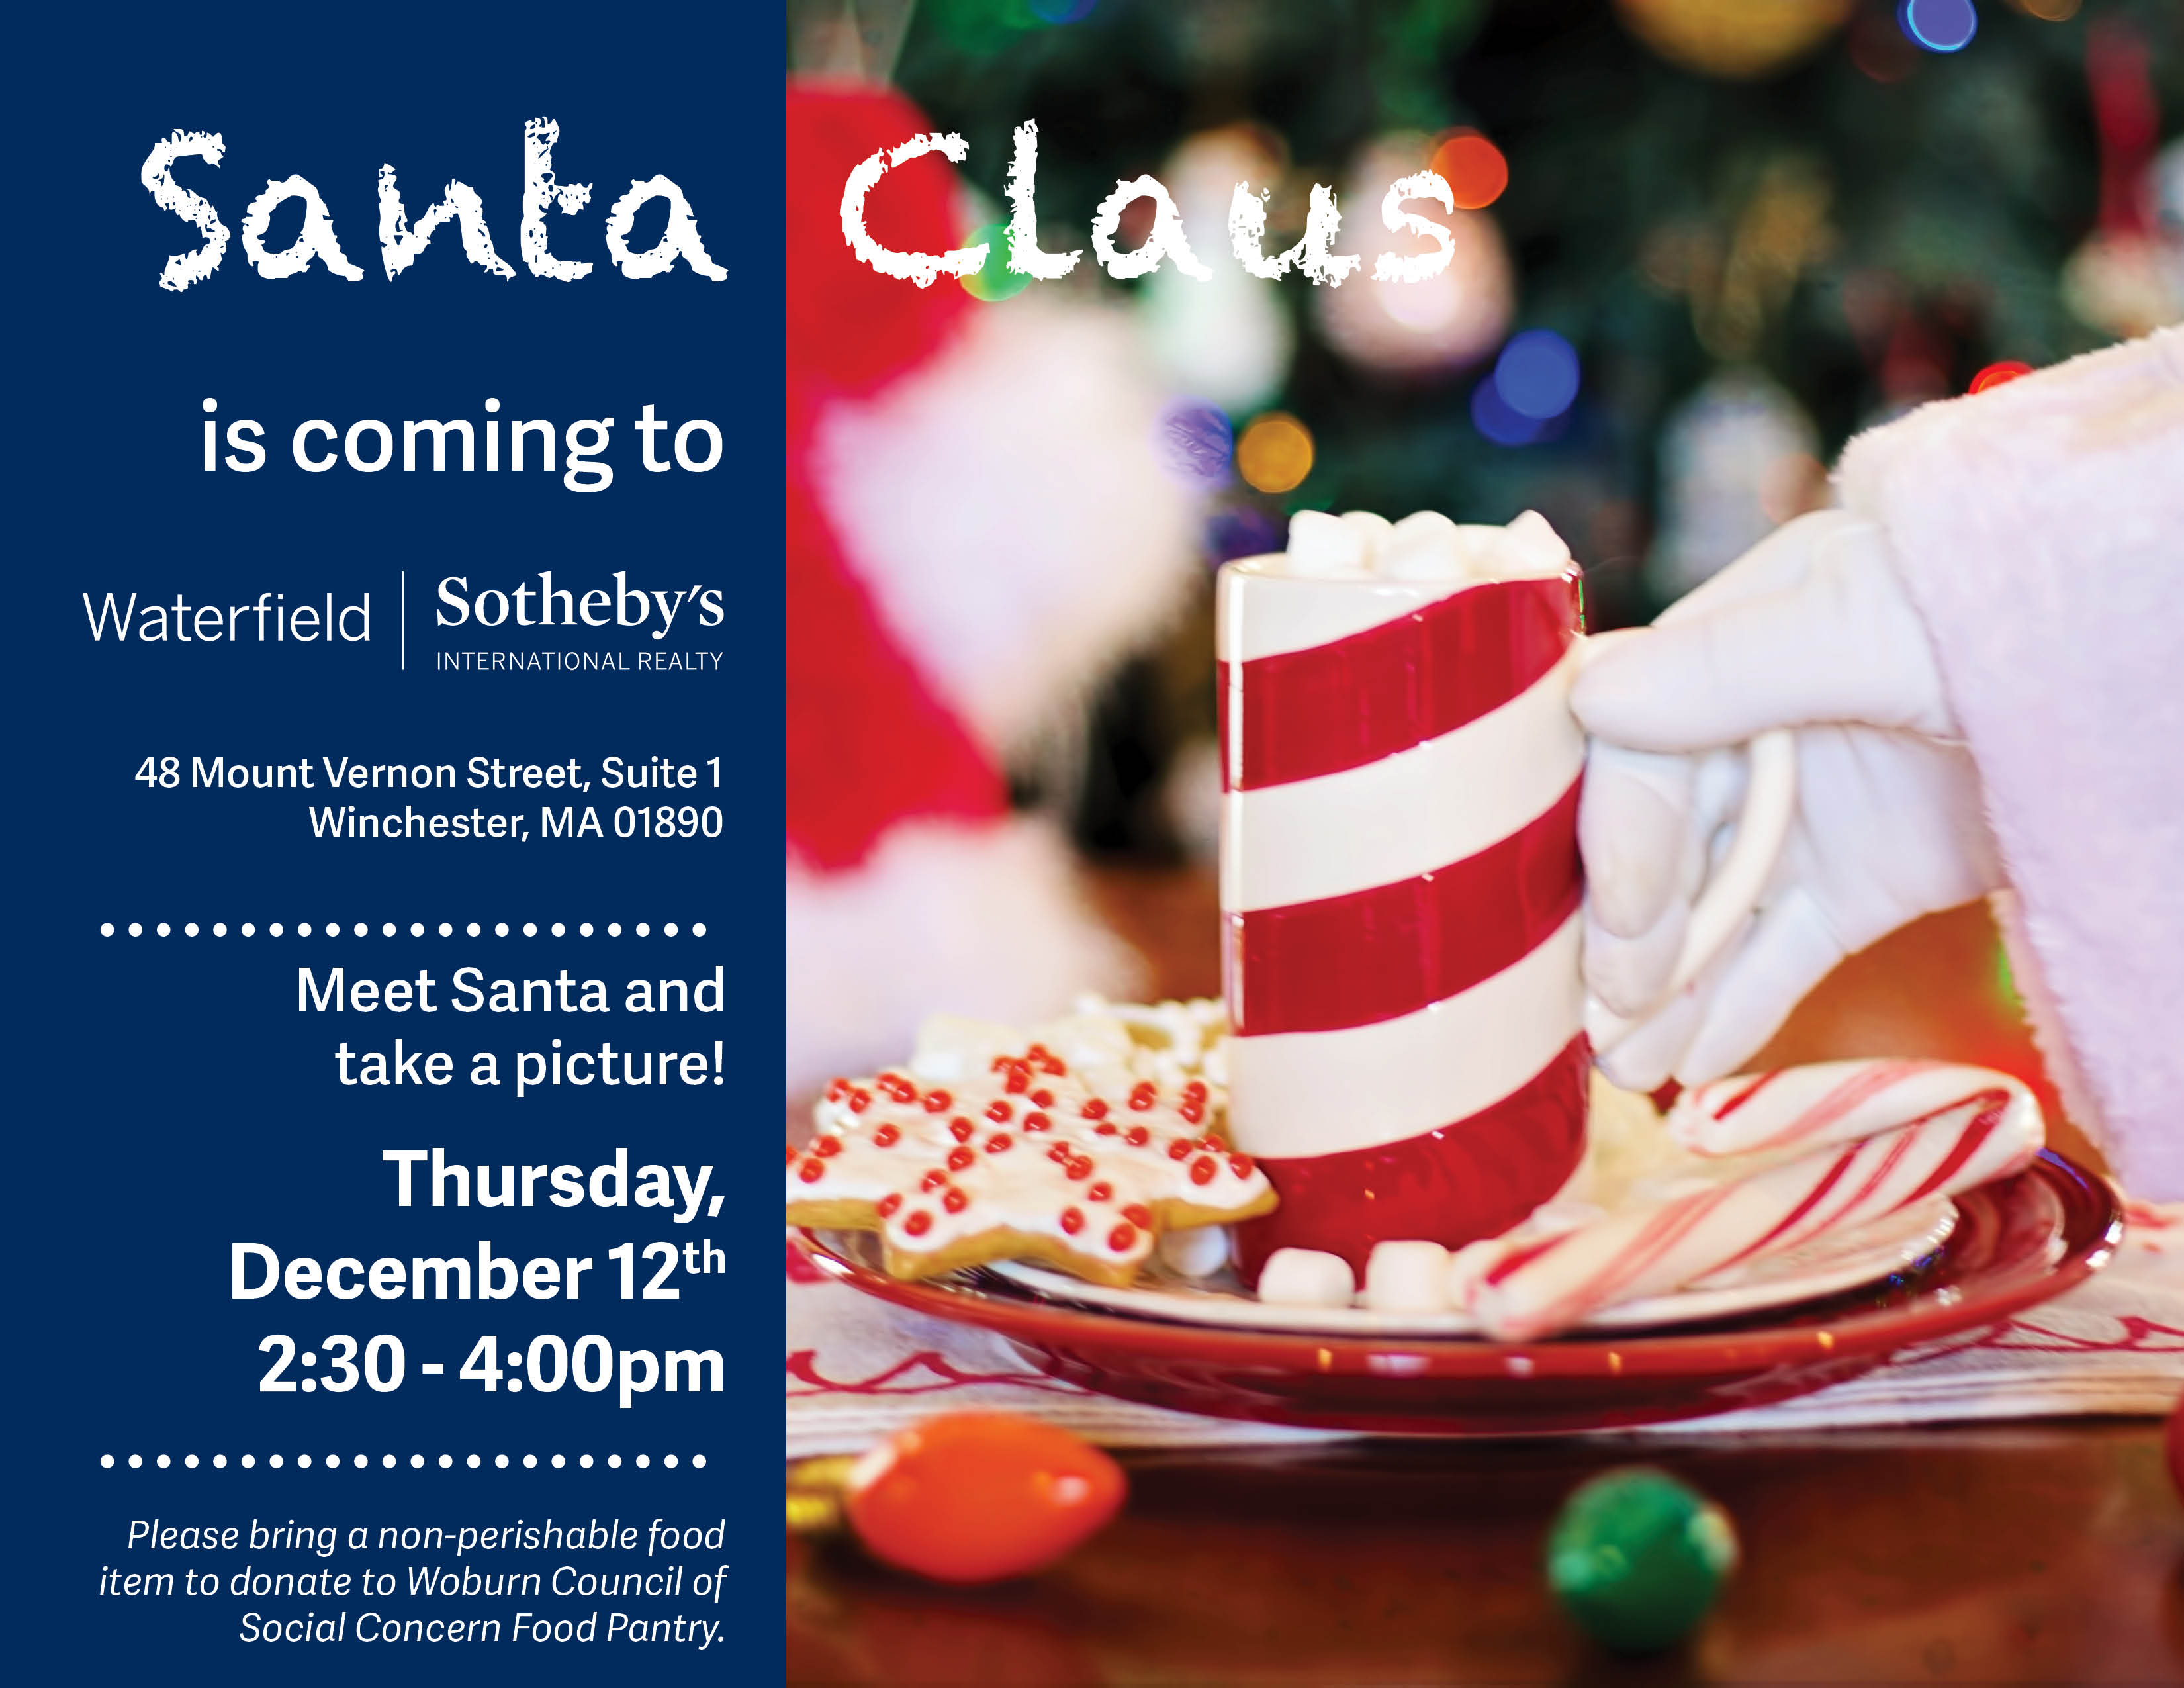 Flyer for Santa Picture Event with Waterfield Sotheby's International Realty